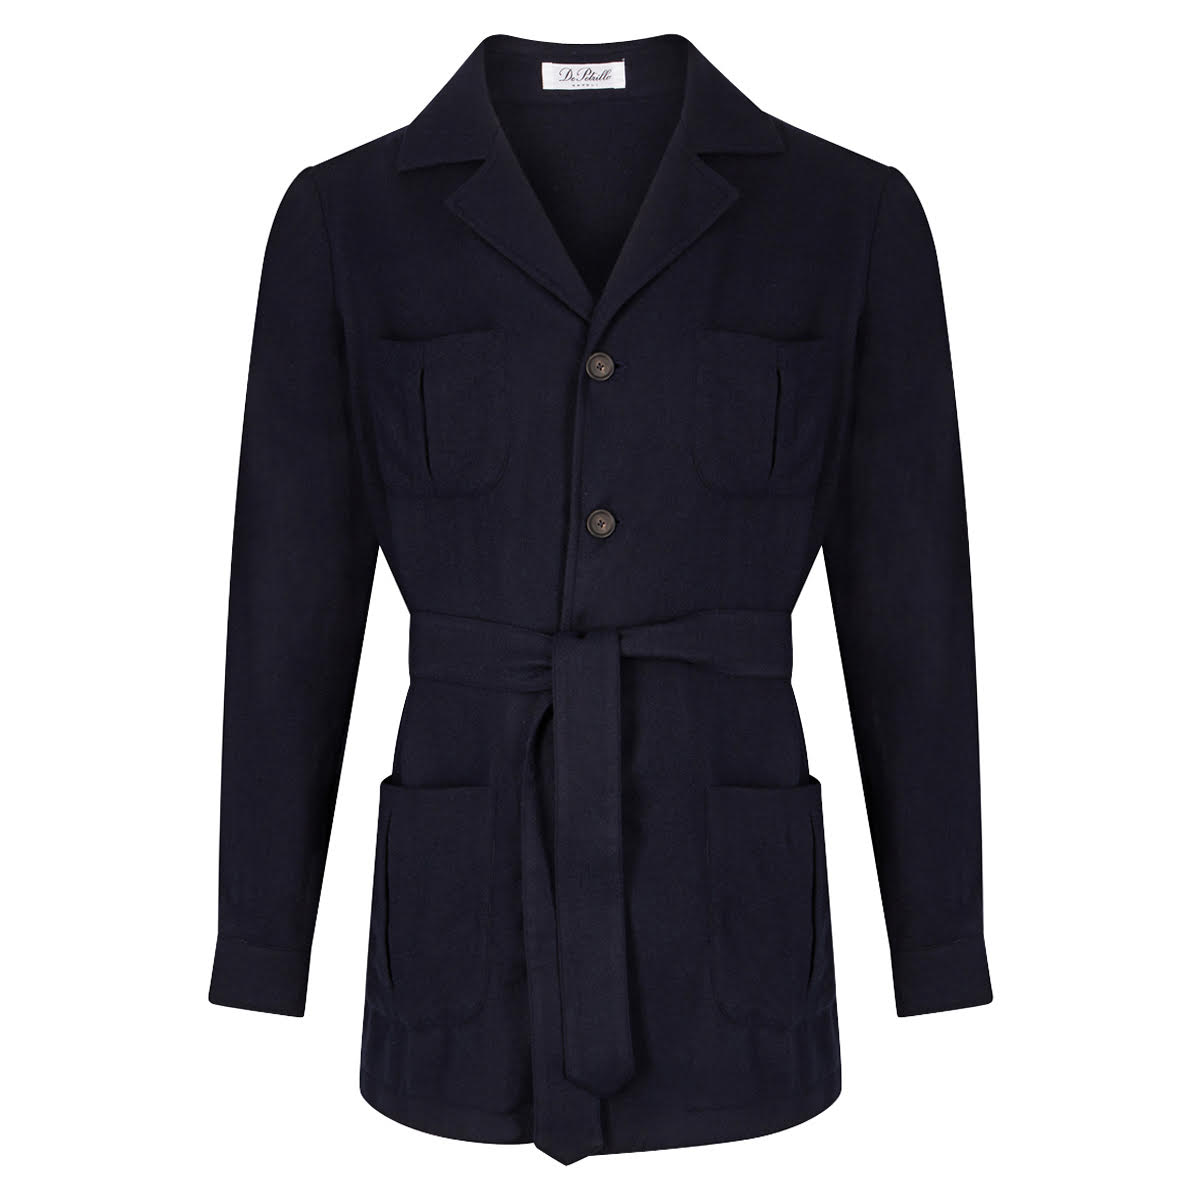 Navy Cashmere Sahariana Travel Jacket